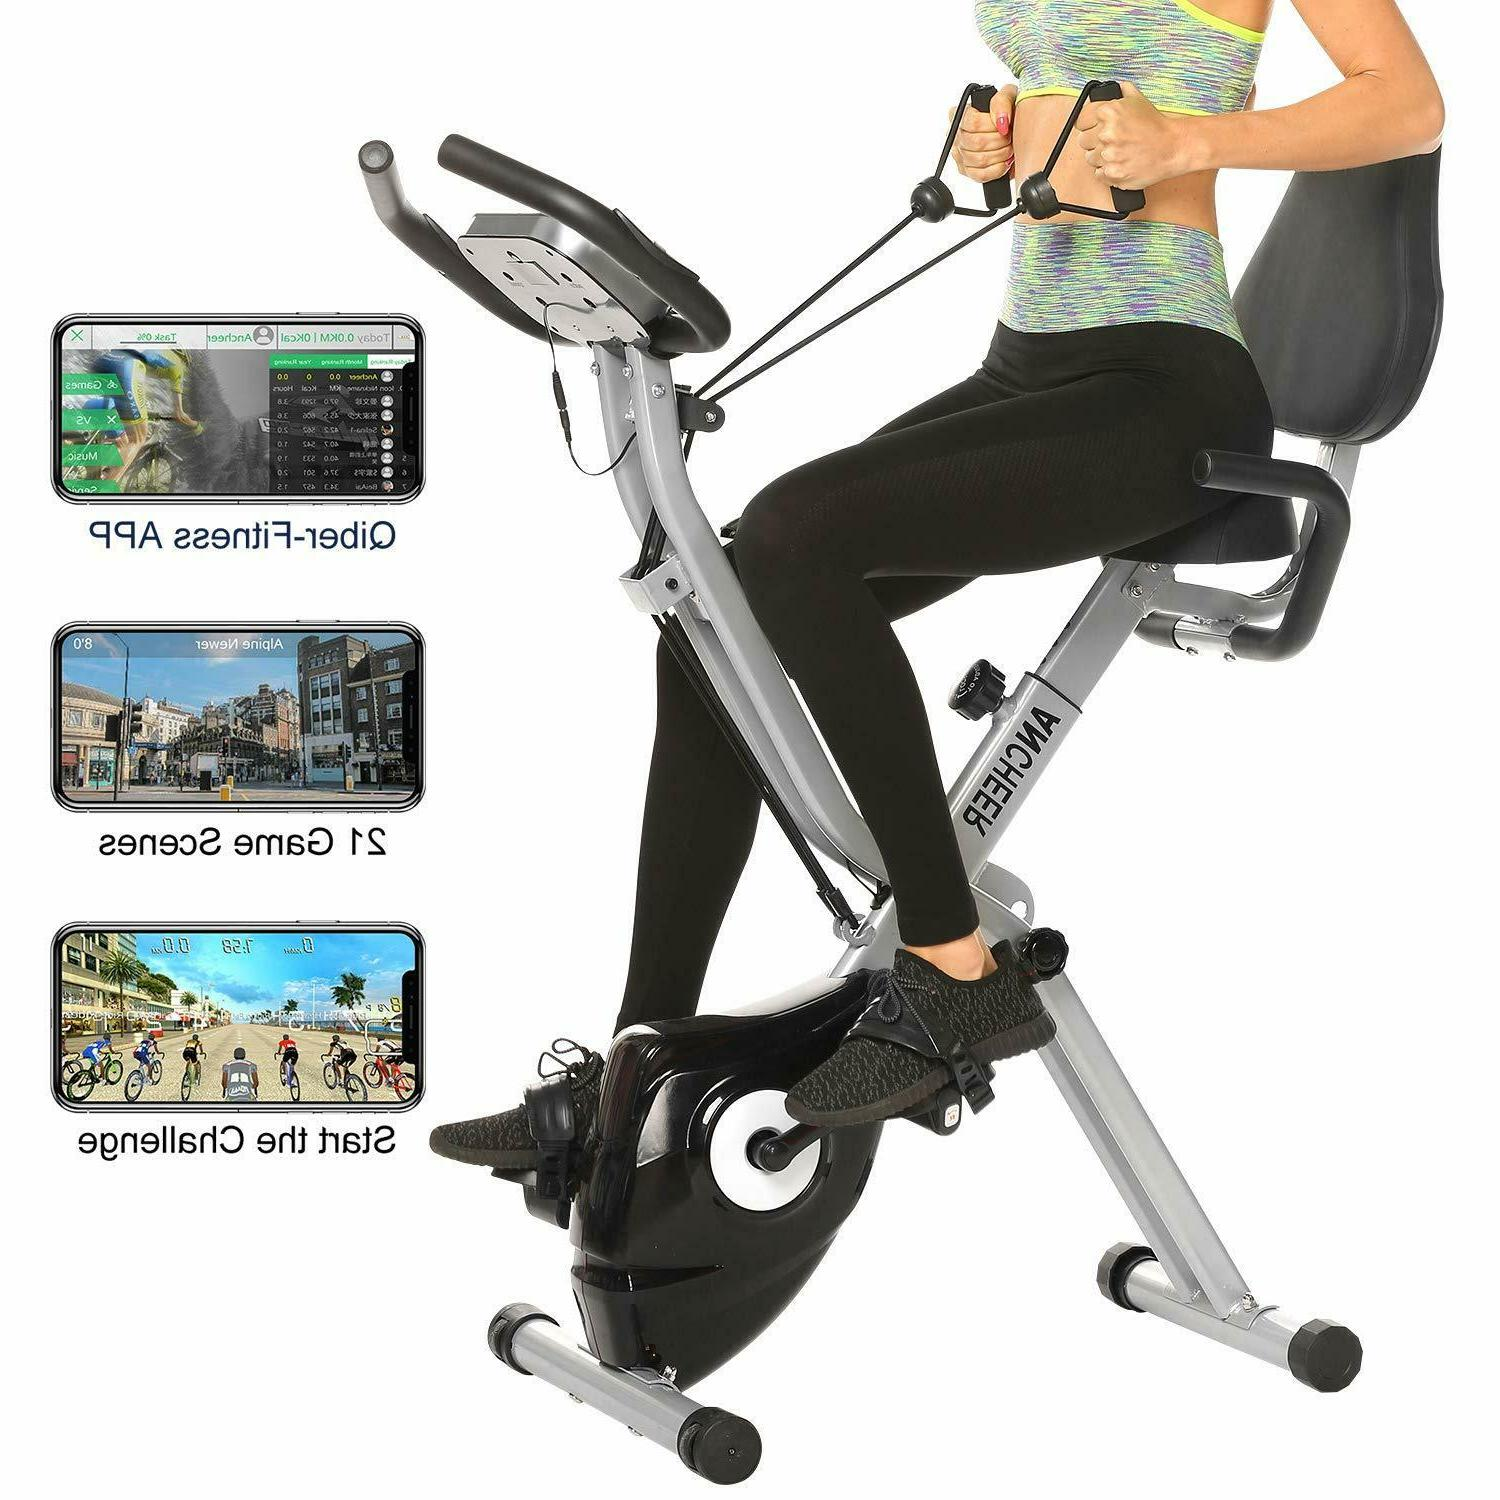 ANCHEER Indoor Exercise Slim Folding Bike 2-in-1 Stationary